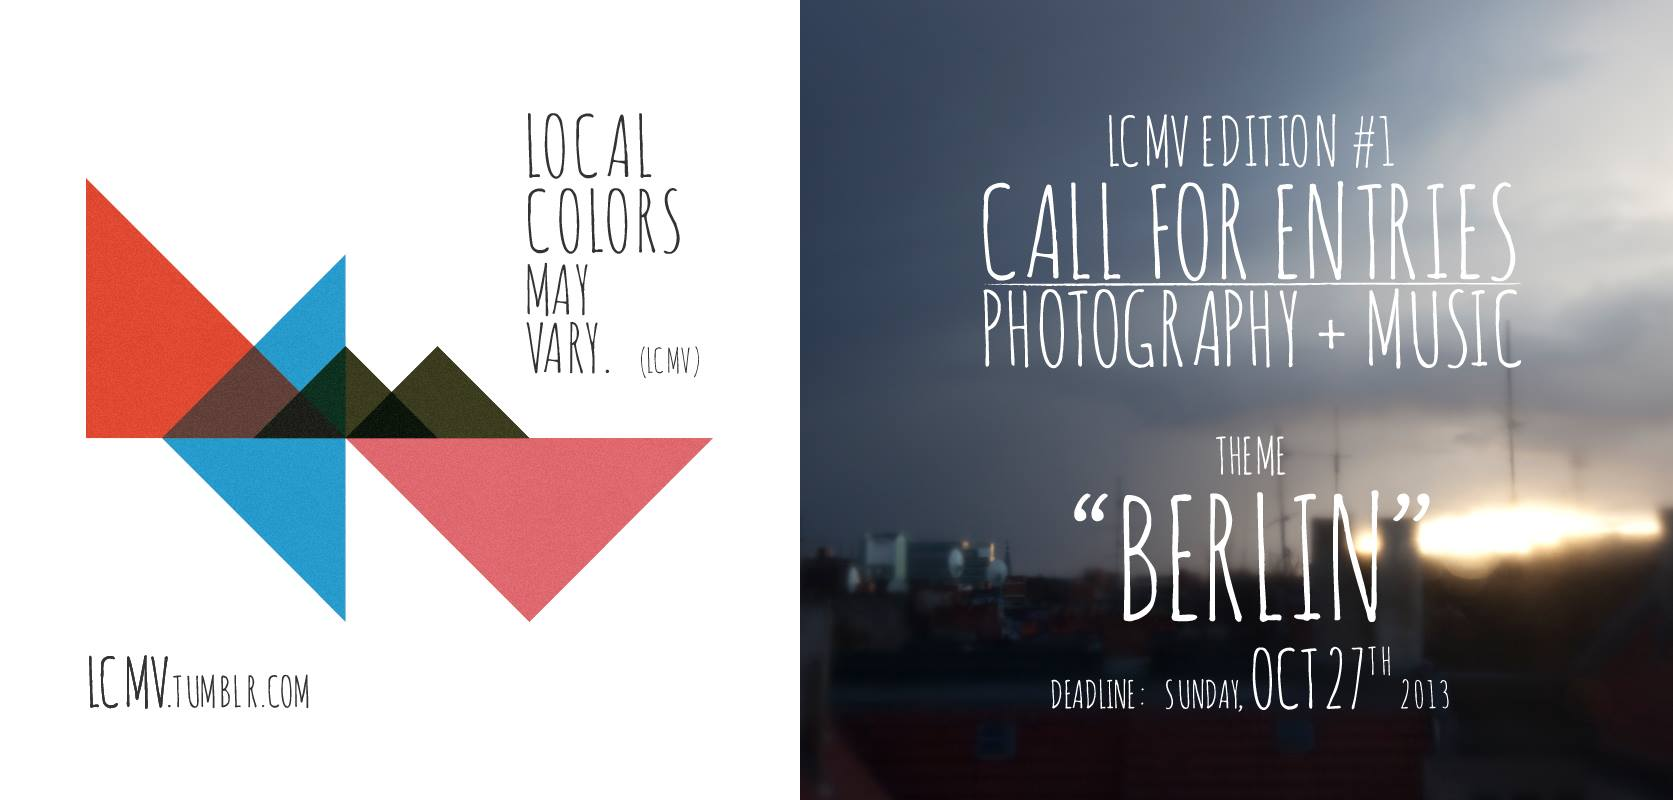 Local Colors May Vary #1 | open call